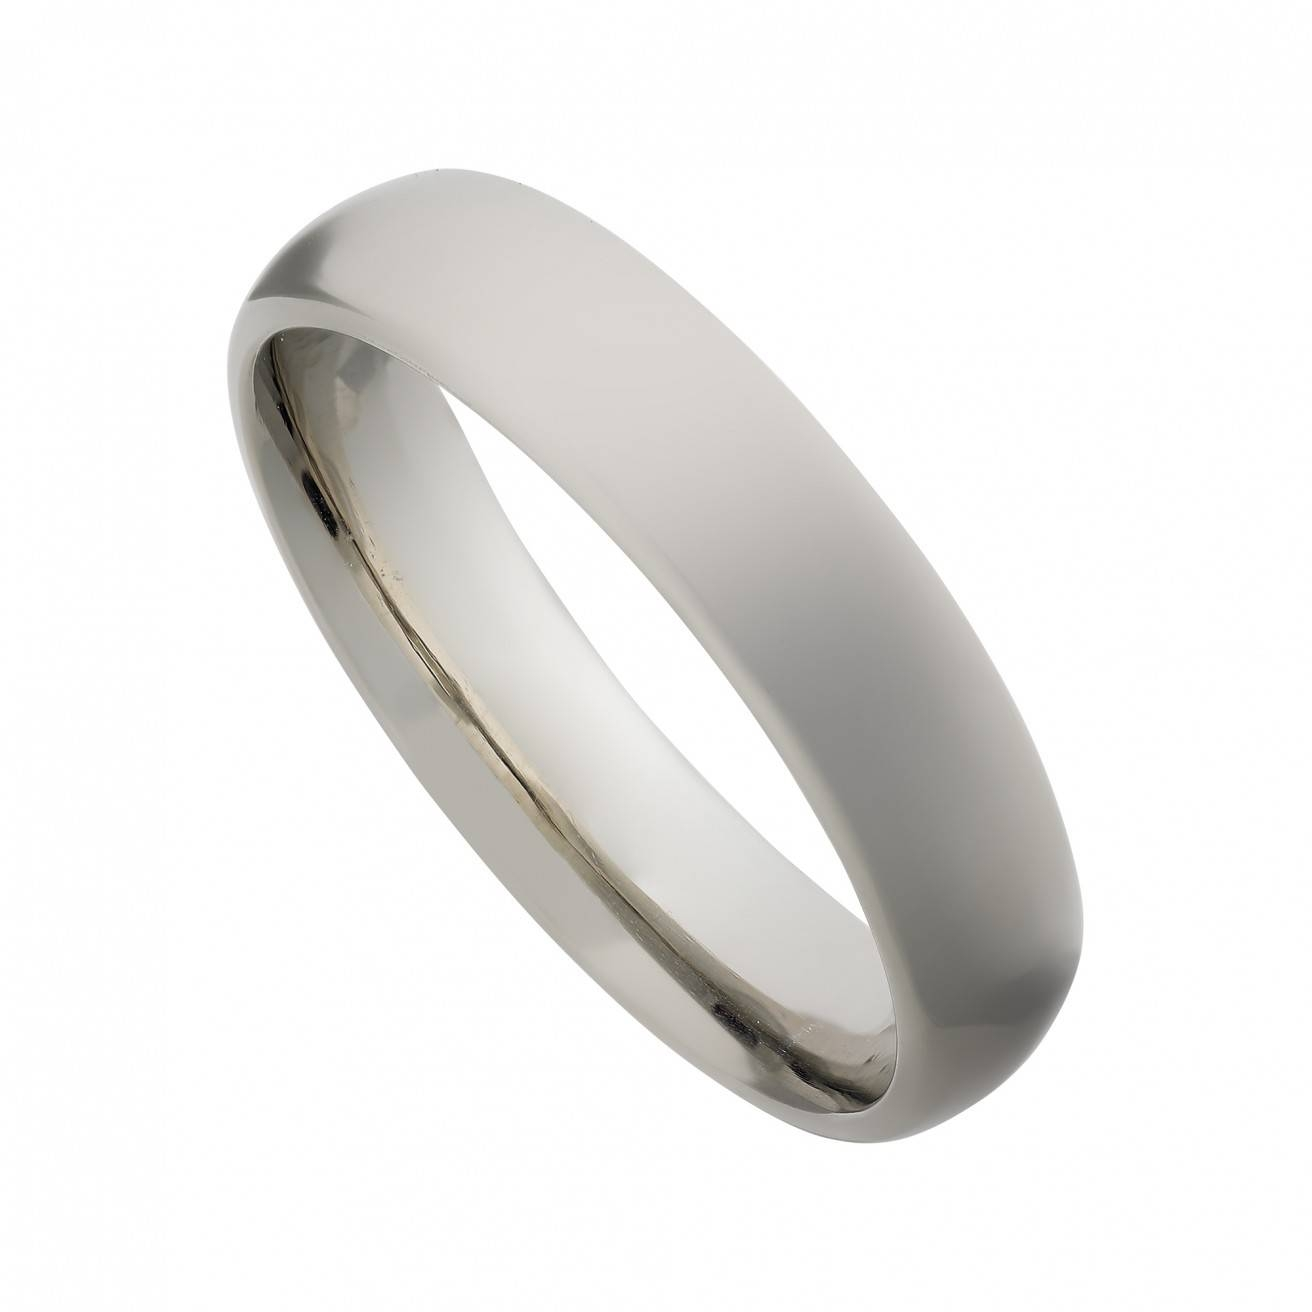 Palladium Wedding Rings Pertaining To Most Popular 5Mm Palladium Wedding Bands (View 11 of 15)